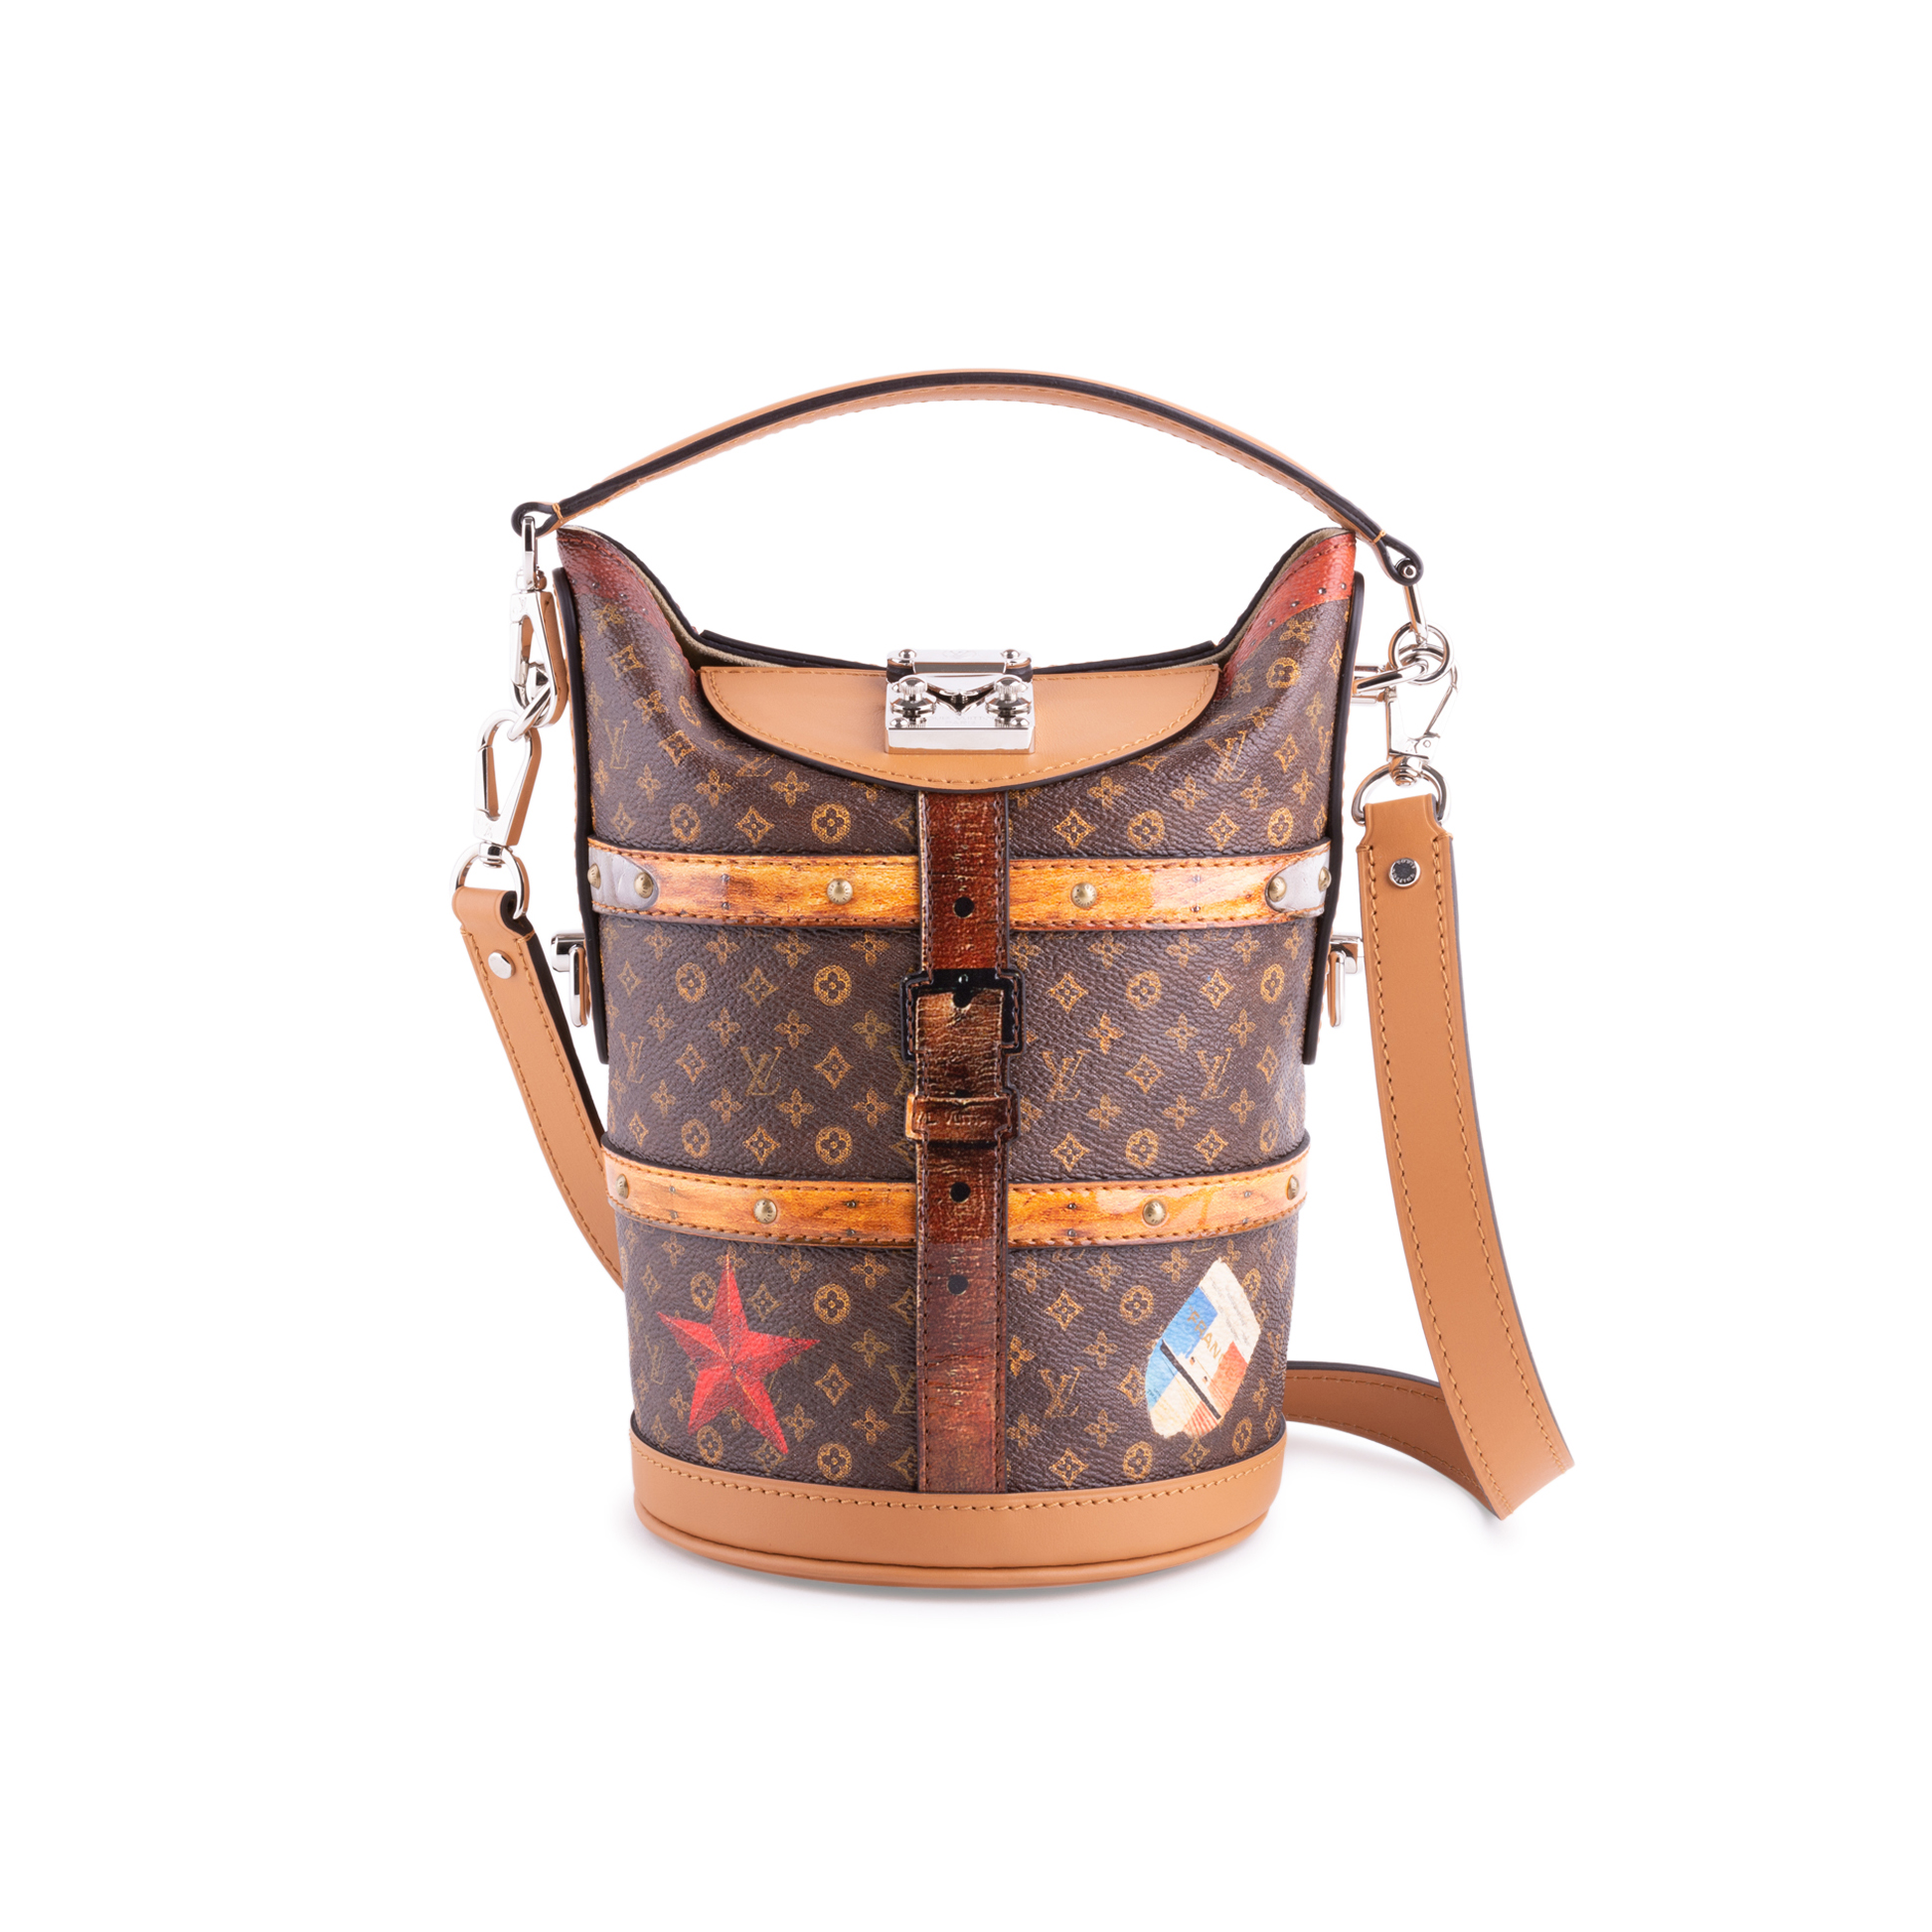 9fe1bbe03 Authentic Second Hand Louis Vuitton Duffle Time Trunk Handbag  (PSS-200-01675) | THE FIFTH COLLECTION